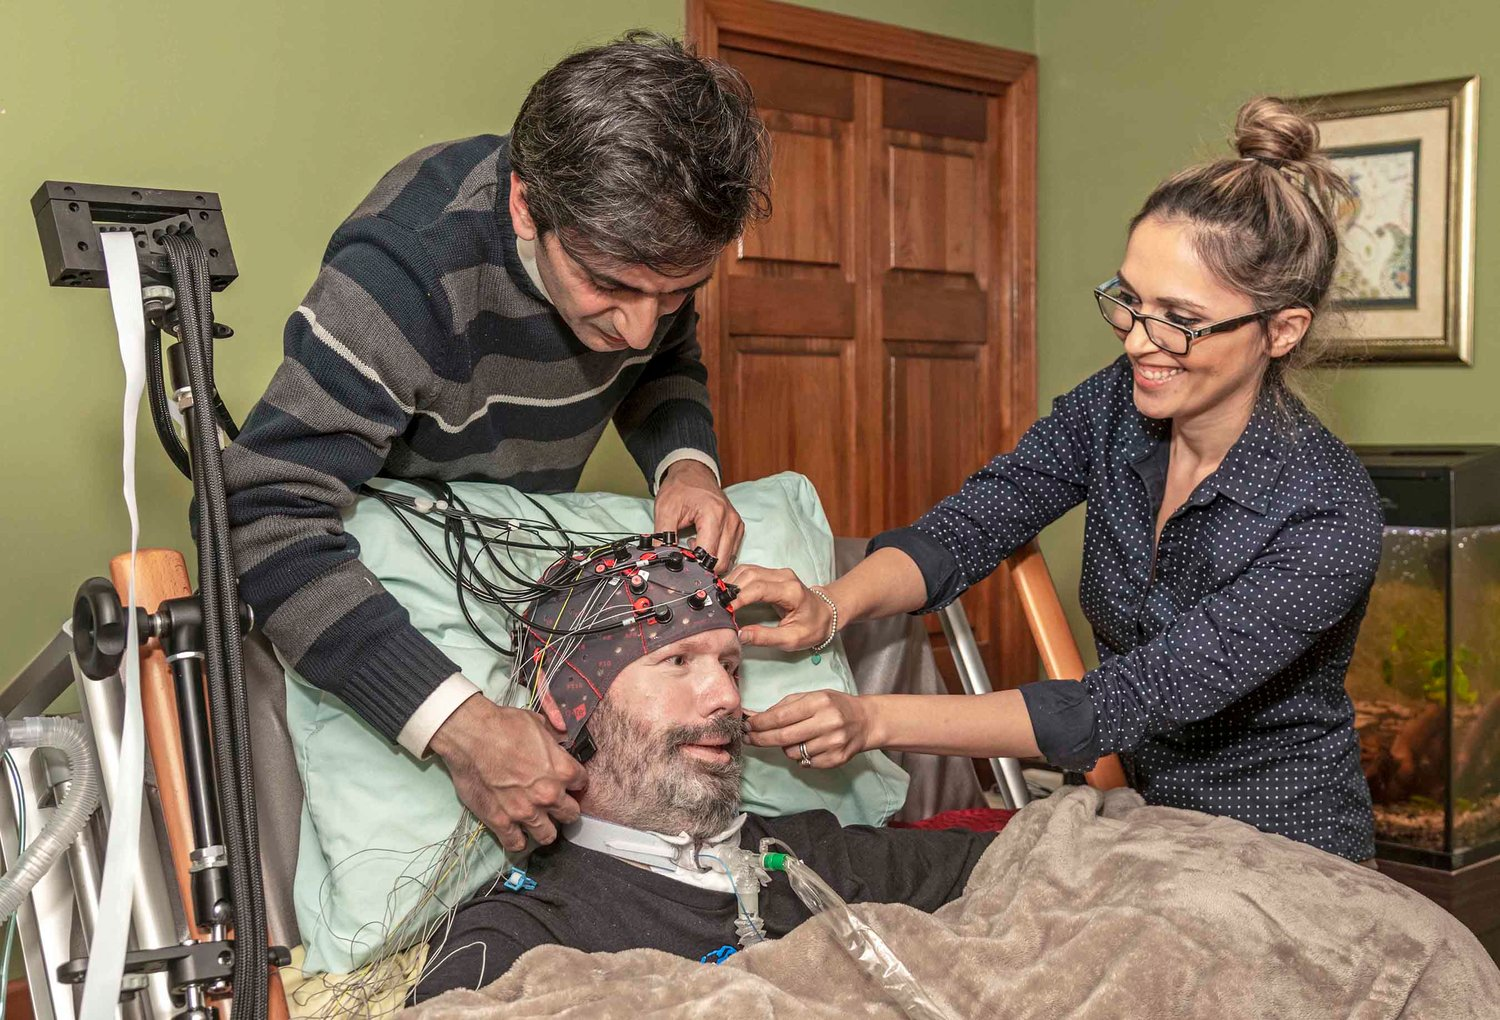 URI doctoral student Bahram Borgheai and URI Assistant Professor Yalda Shahriari (right) adjust the cap used to monitor ALS patient Doug Sawyer's brain activity.